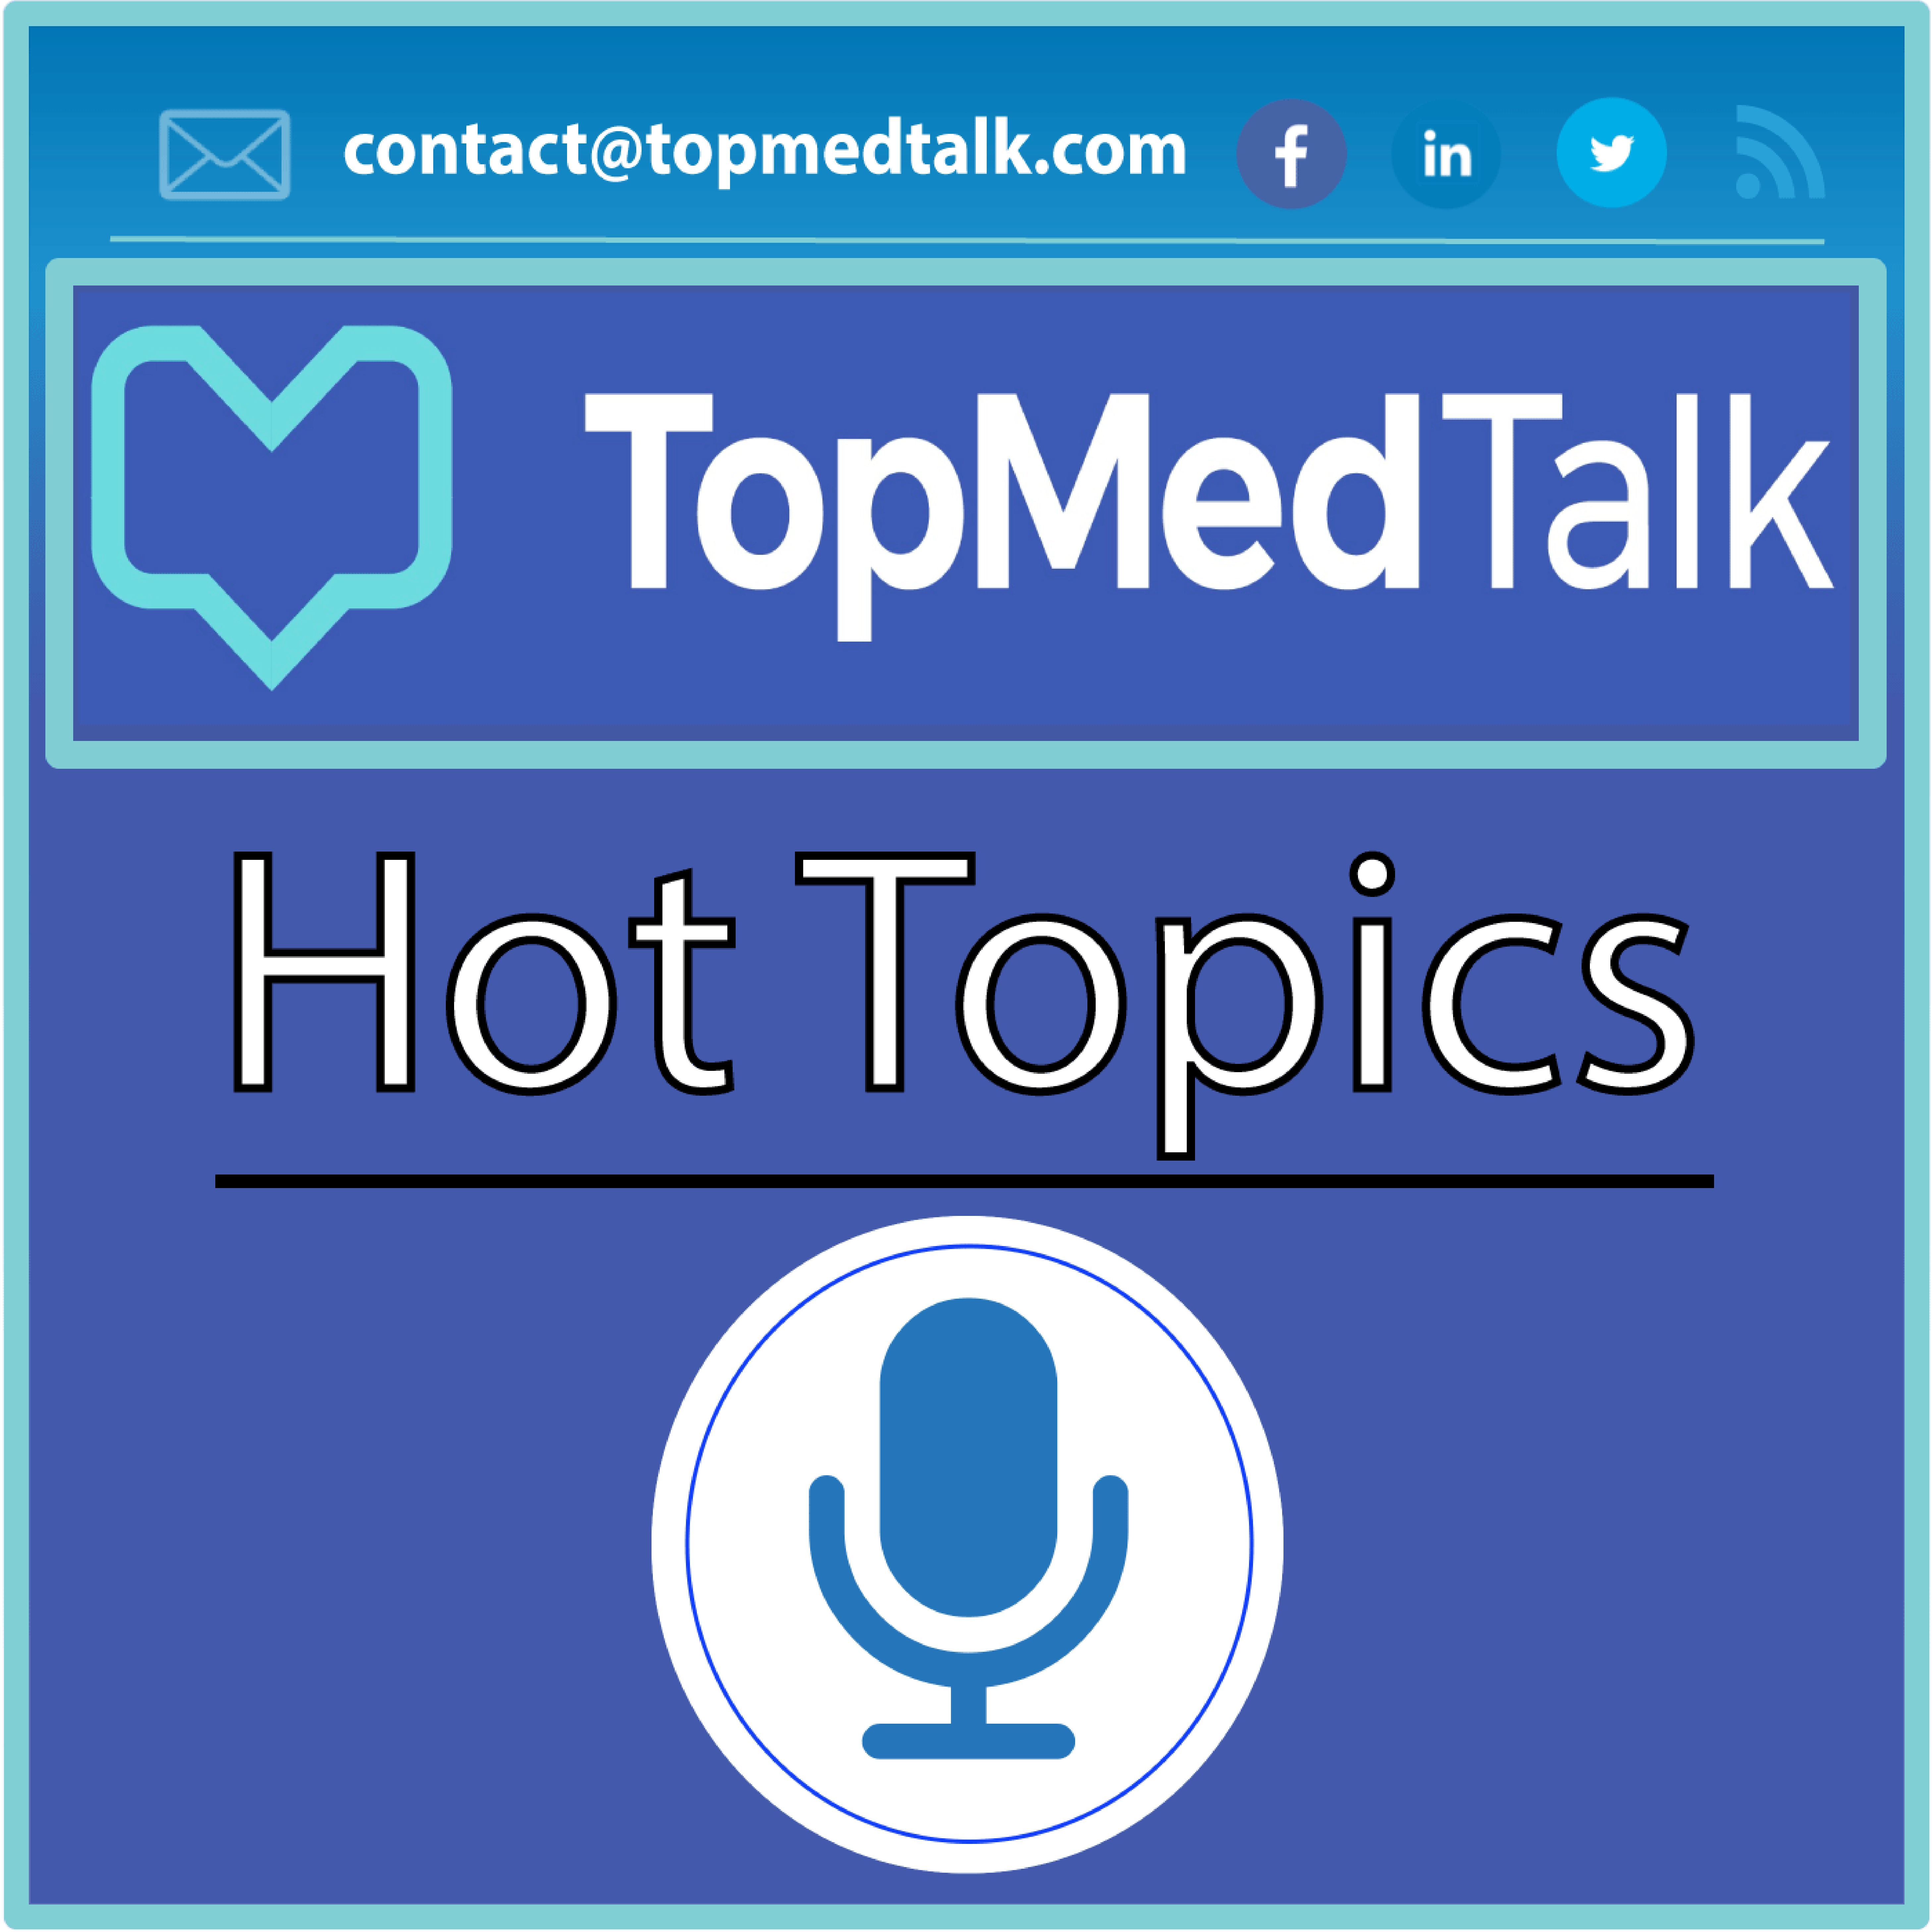 What next for TopMedTalk?